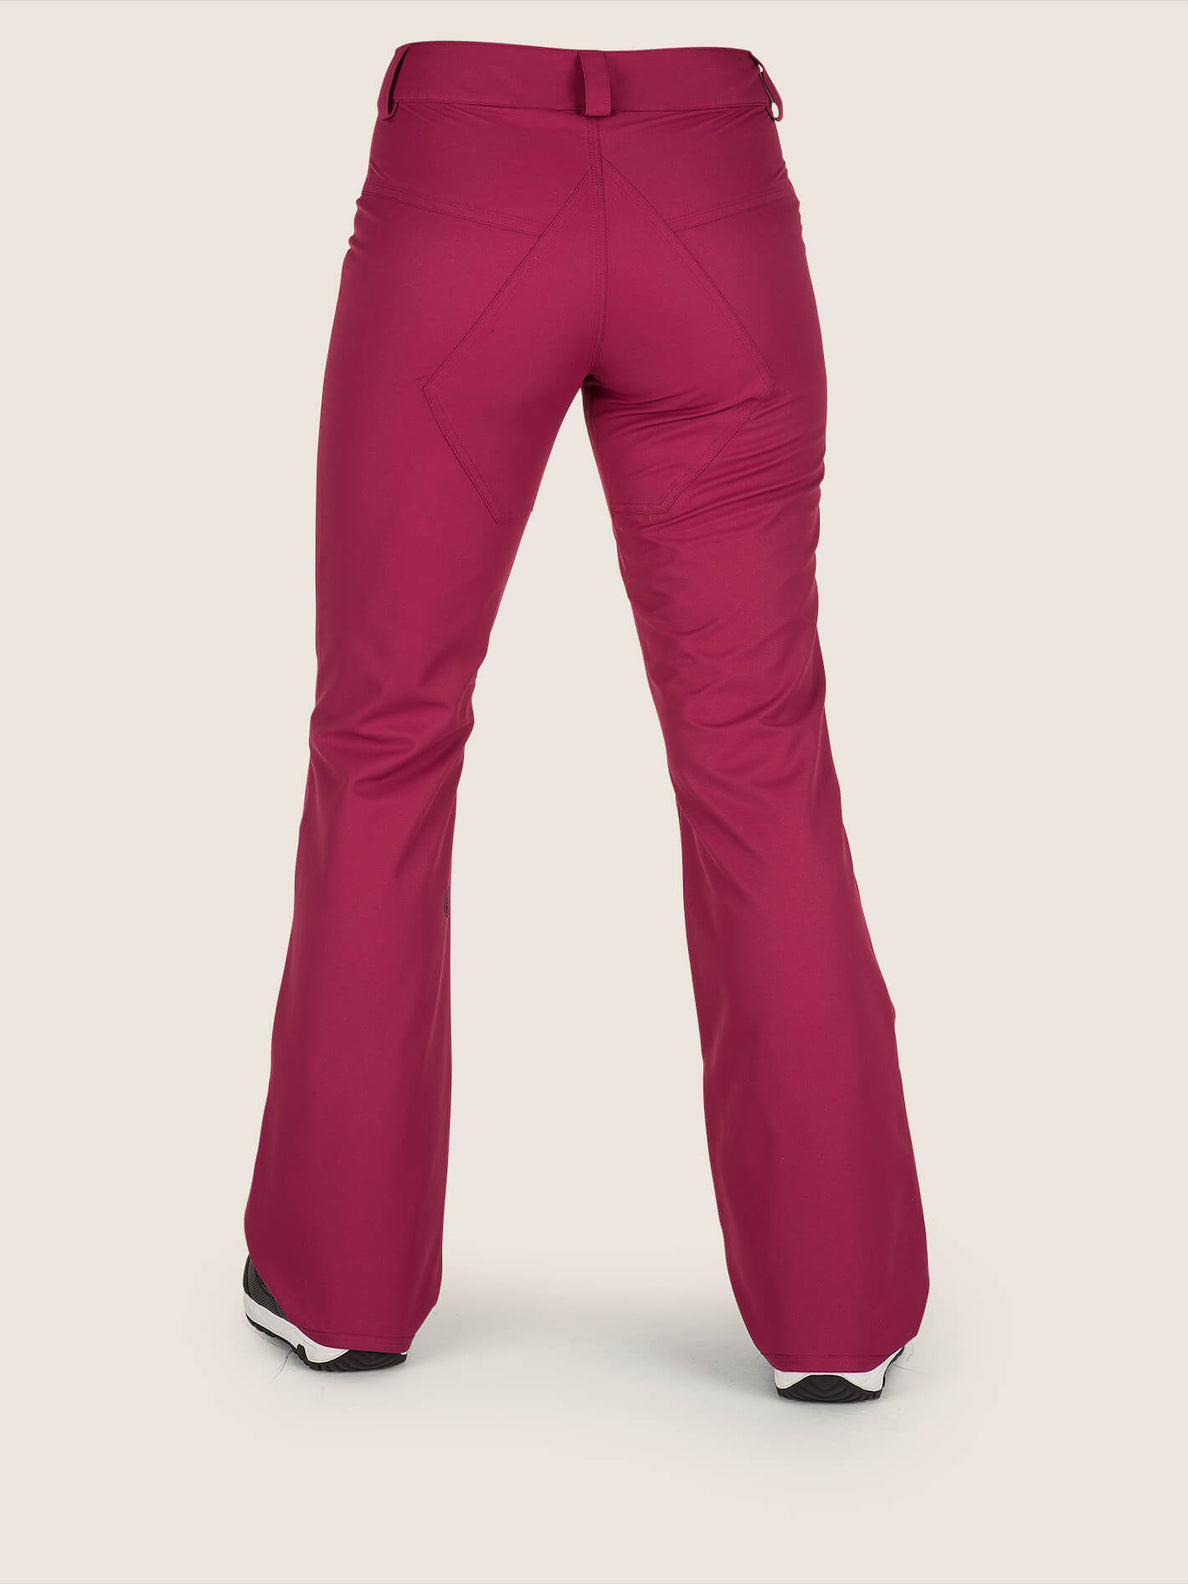 Hallen Pant In Magenta, Back View